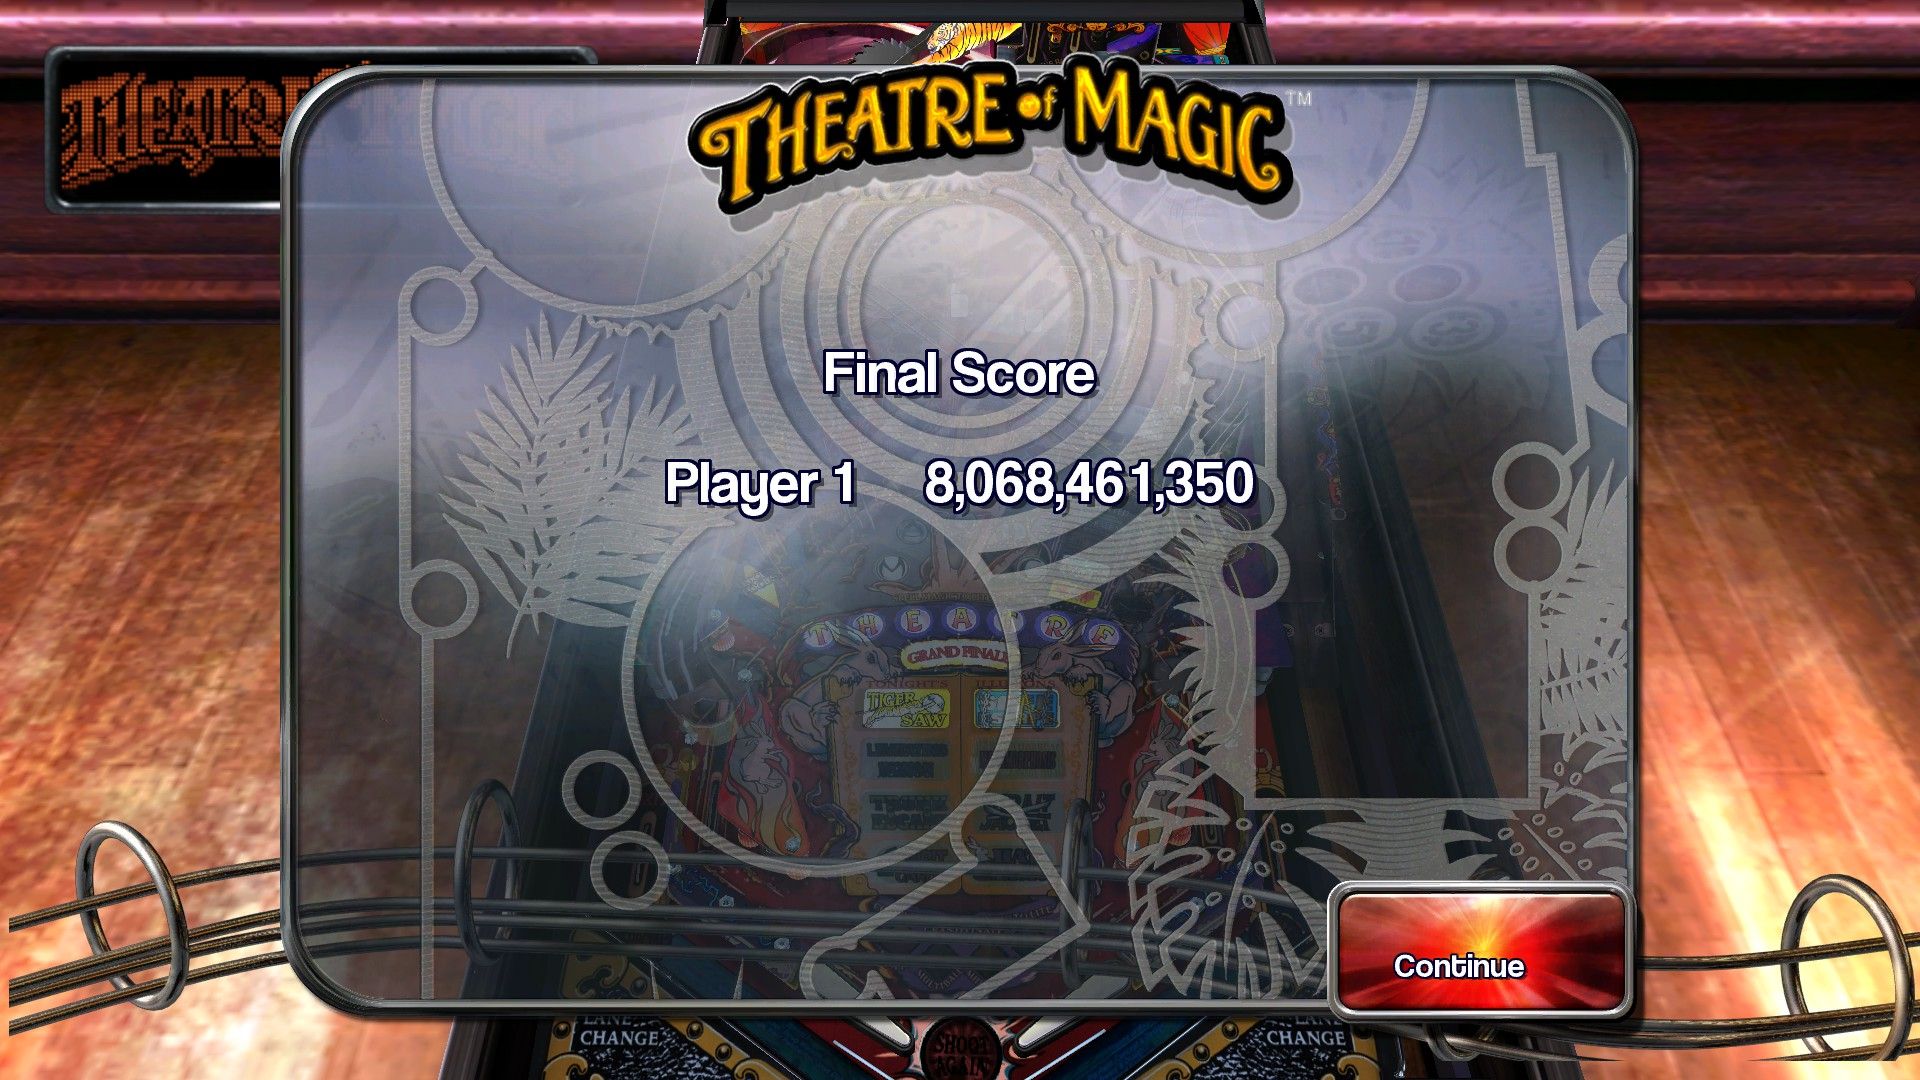 TheTrickster: Pinball Arcade: Theatre of Magic (PC) 8,068,461,350 points on 2015-11-22 00:12:35